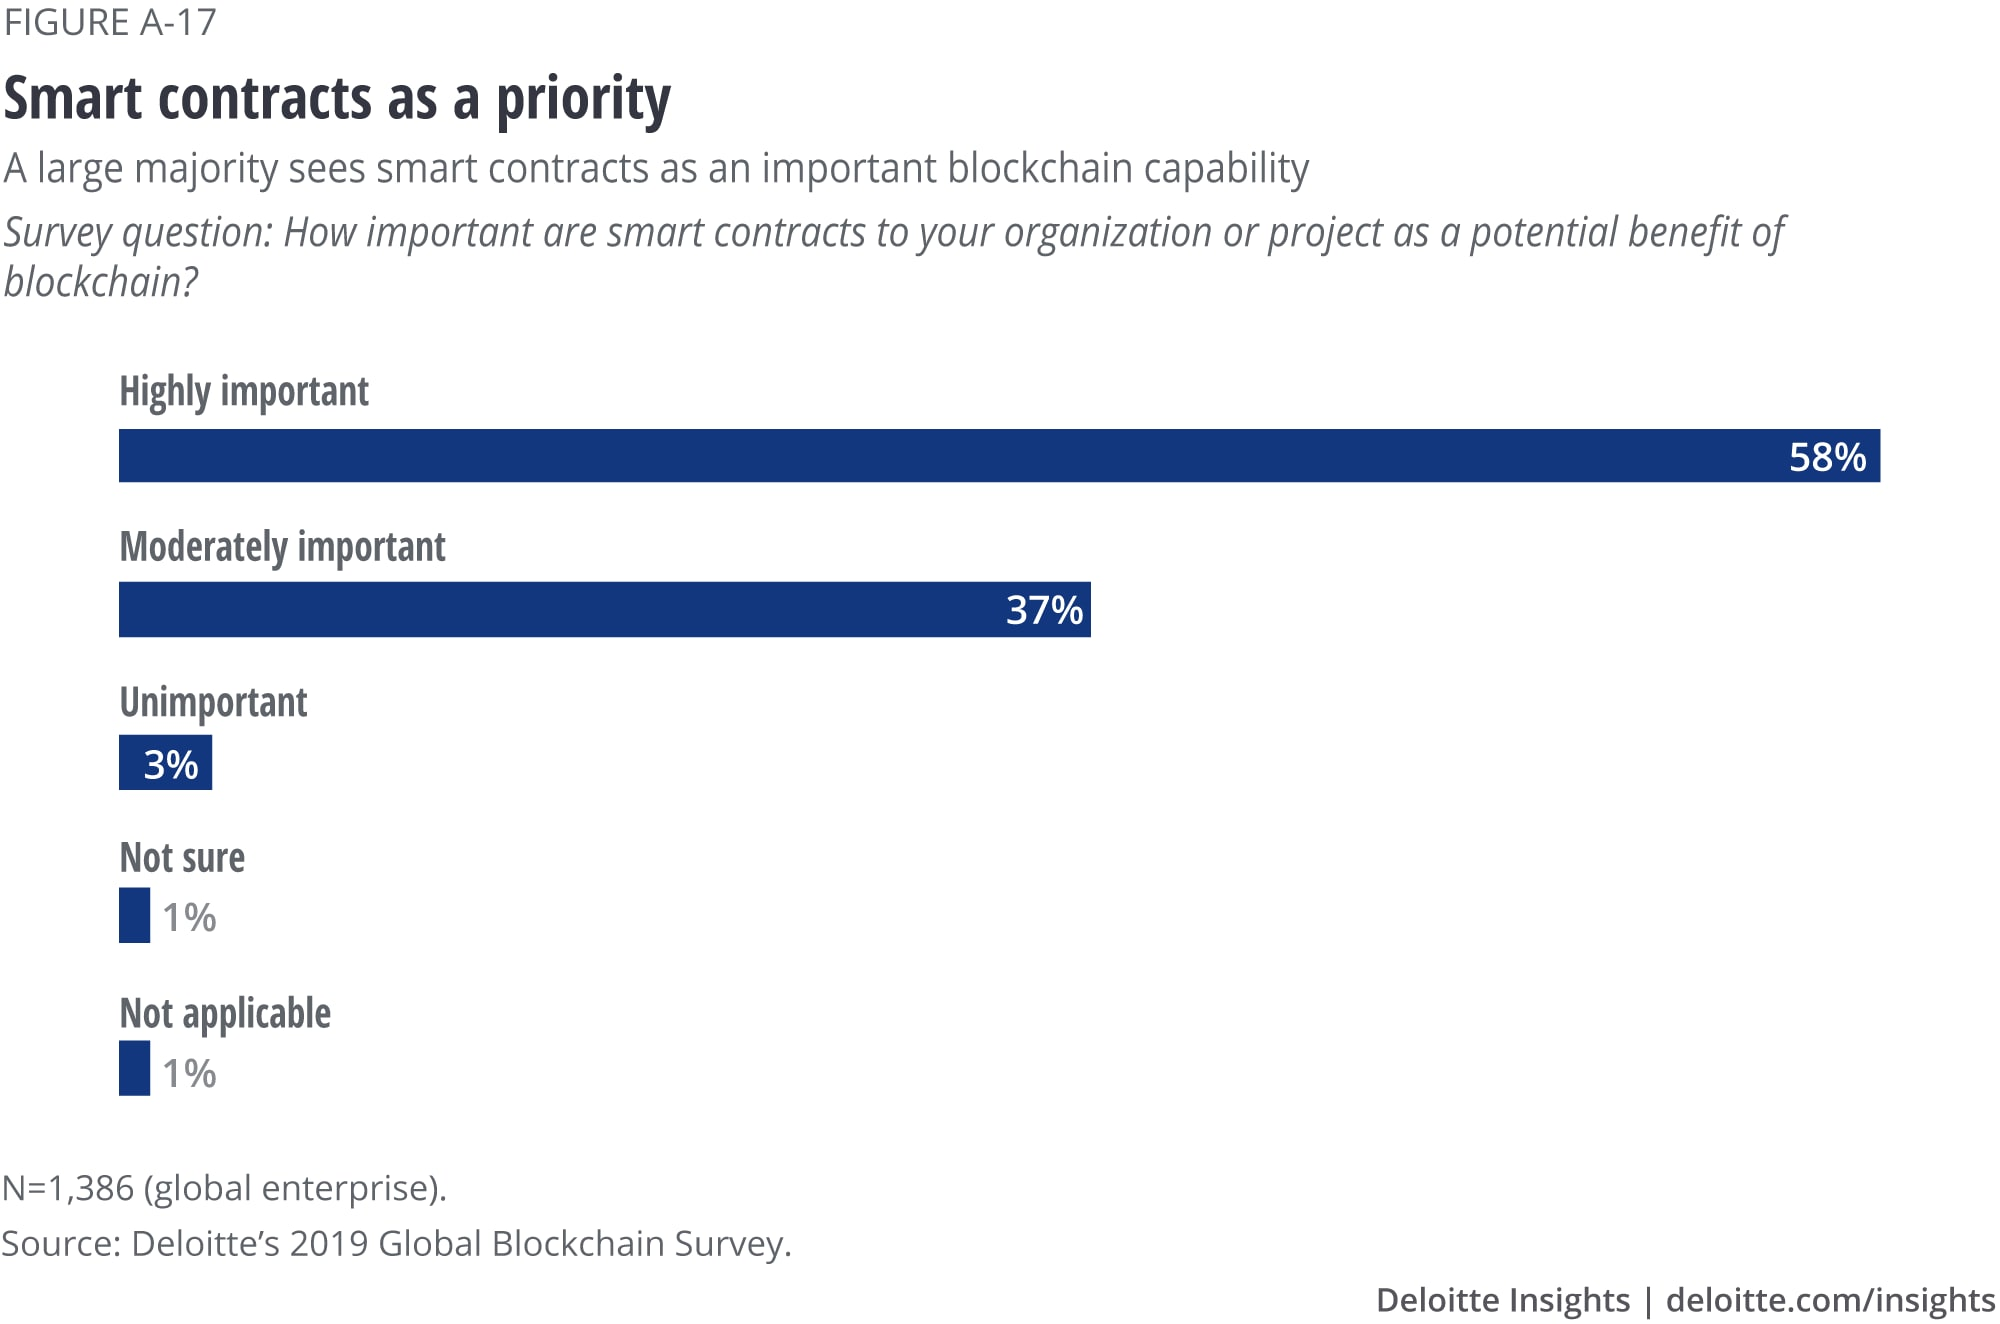 Smart contracts as a priority